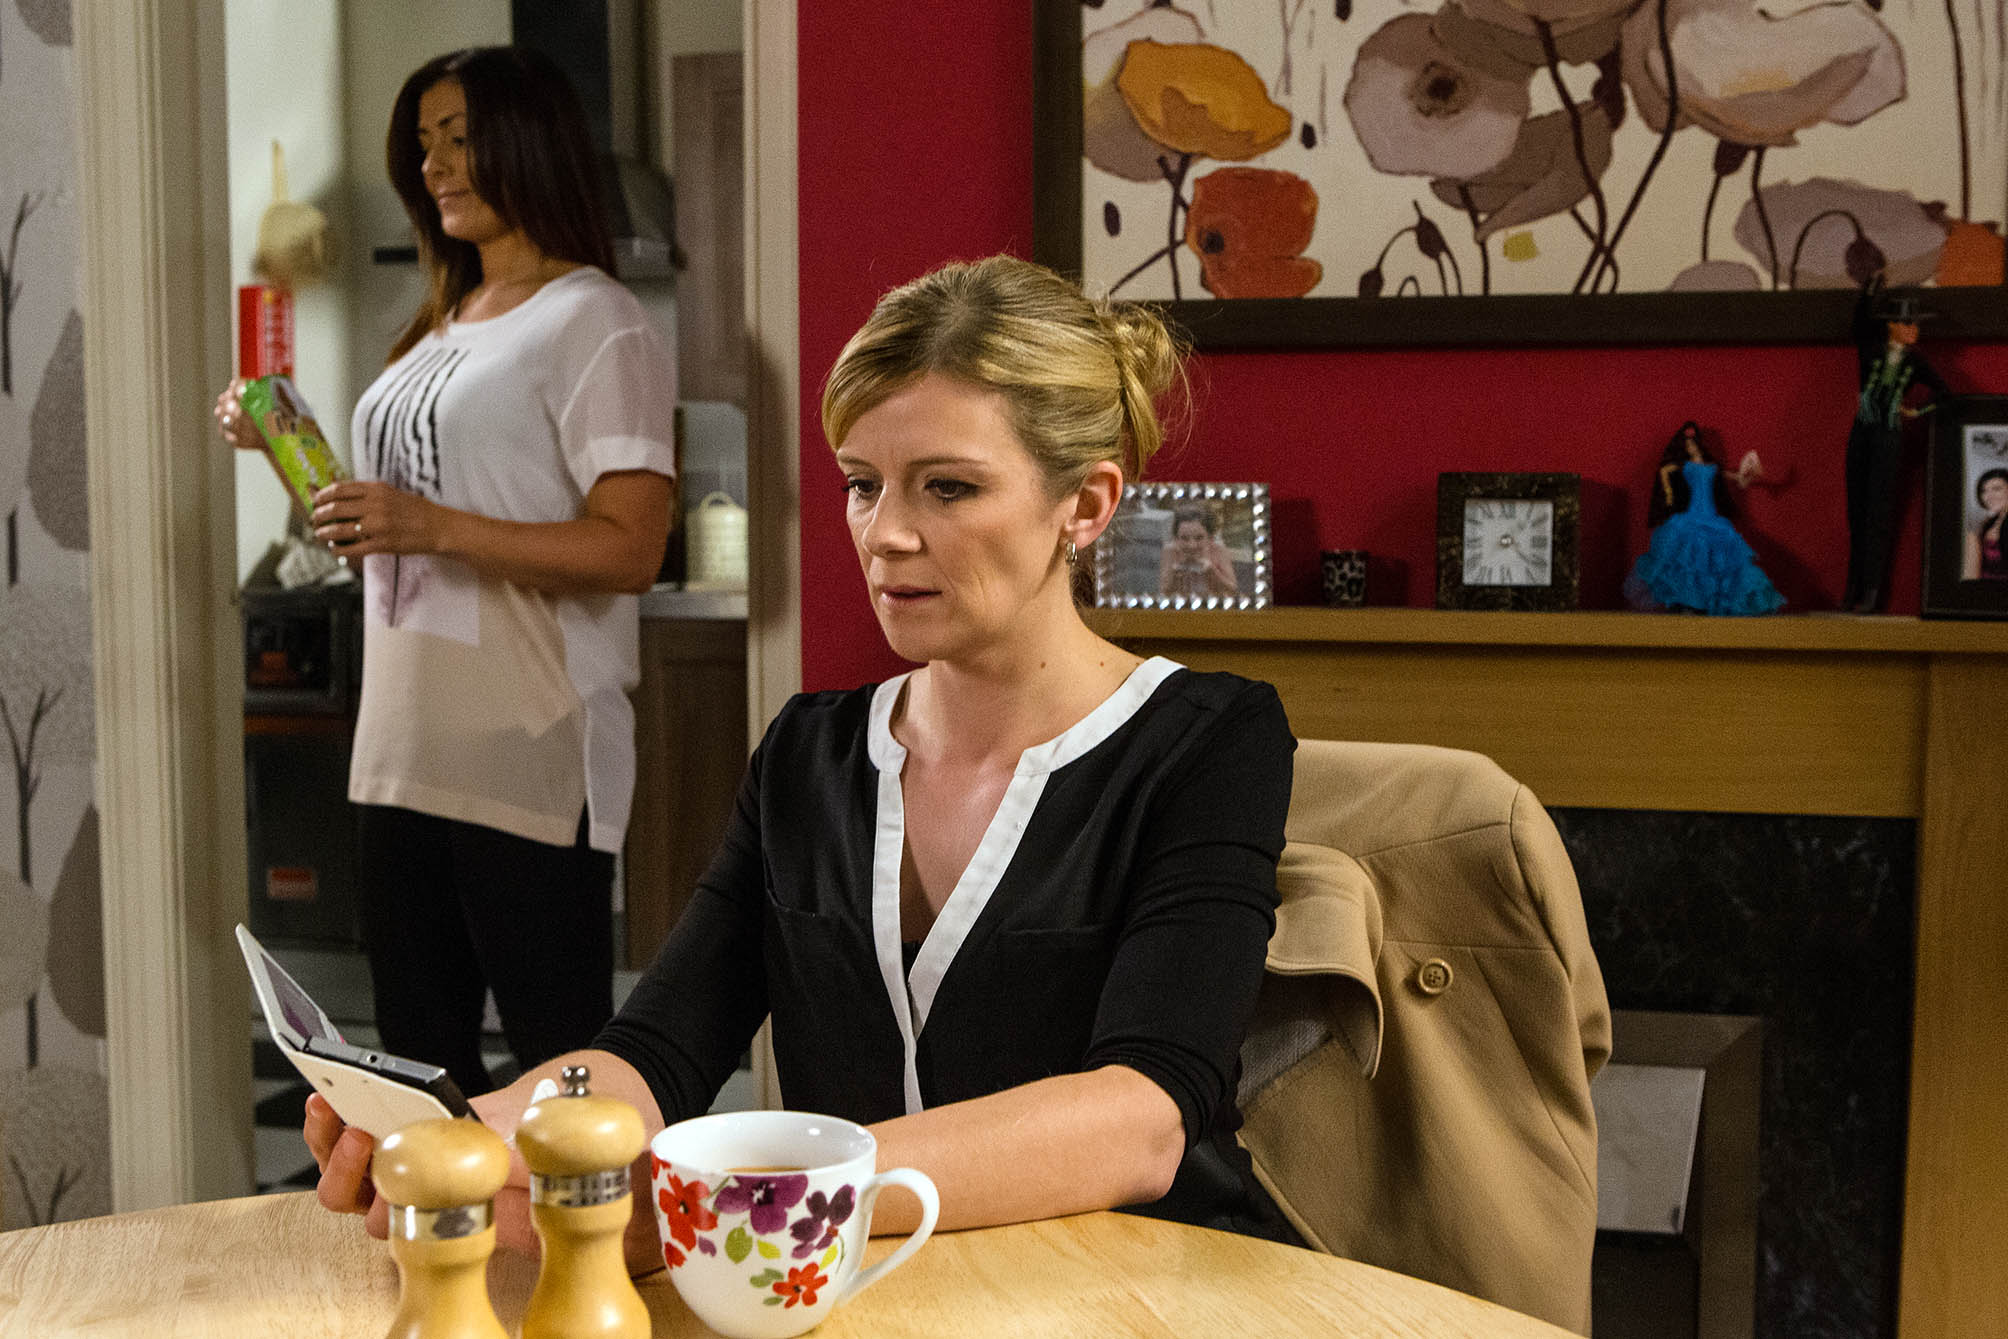 FROM ITV STRICT EMBARGO - NO USE BEFORE TUESDAY 30 AUGUST 2016 Coronation Street - Ep 8984 Monday 5 September 2016 - 2nd Ep Michelle Connor's [KYM MARSH] phone beeps, seeing that the incoming text is from Nick, Leanne Tilsley [JANE DANSON] nervously hides the phone. But when Michelle's phone rings in Leanne's pocket, Leanne is forced to hand it over, making out she picked it up by accident. As Michelle reads Nick's text, Leanne's heart is in her mouth. Has Nick blown everything? Picture contact: david.crook@itv.com on 0161 952 6214 Photographer - Mark Bruce This photograph is (C) ITV Plc and can only be reproduced for editorial purposes directly in connection with the programme or event mentioned above, or ITV plc. Once made available by ITV plc Picture Desk, this photograph can be reproduced once only up until the transmission [TX] date and no reproduction fee will be charged. Any subsequent usage may incur a fee. This photograph must not be manipulated [excluding basic cropping] in a manner which alters the visual appearance of the person photographed deemed detrimental or inappropriate by ITV plc Picture Desk. This photograph must not be syndicated to any other company, publication or website, or permanently archived, without the express written permission of ITV Plc Picture Desk. Full Terms and conditions are available on the website www.itvpictures.com